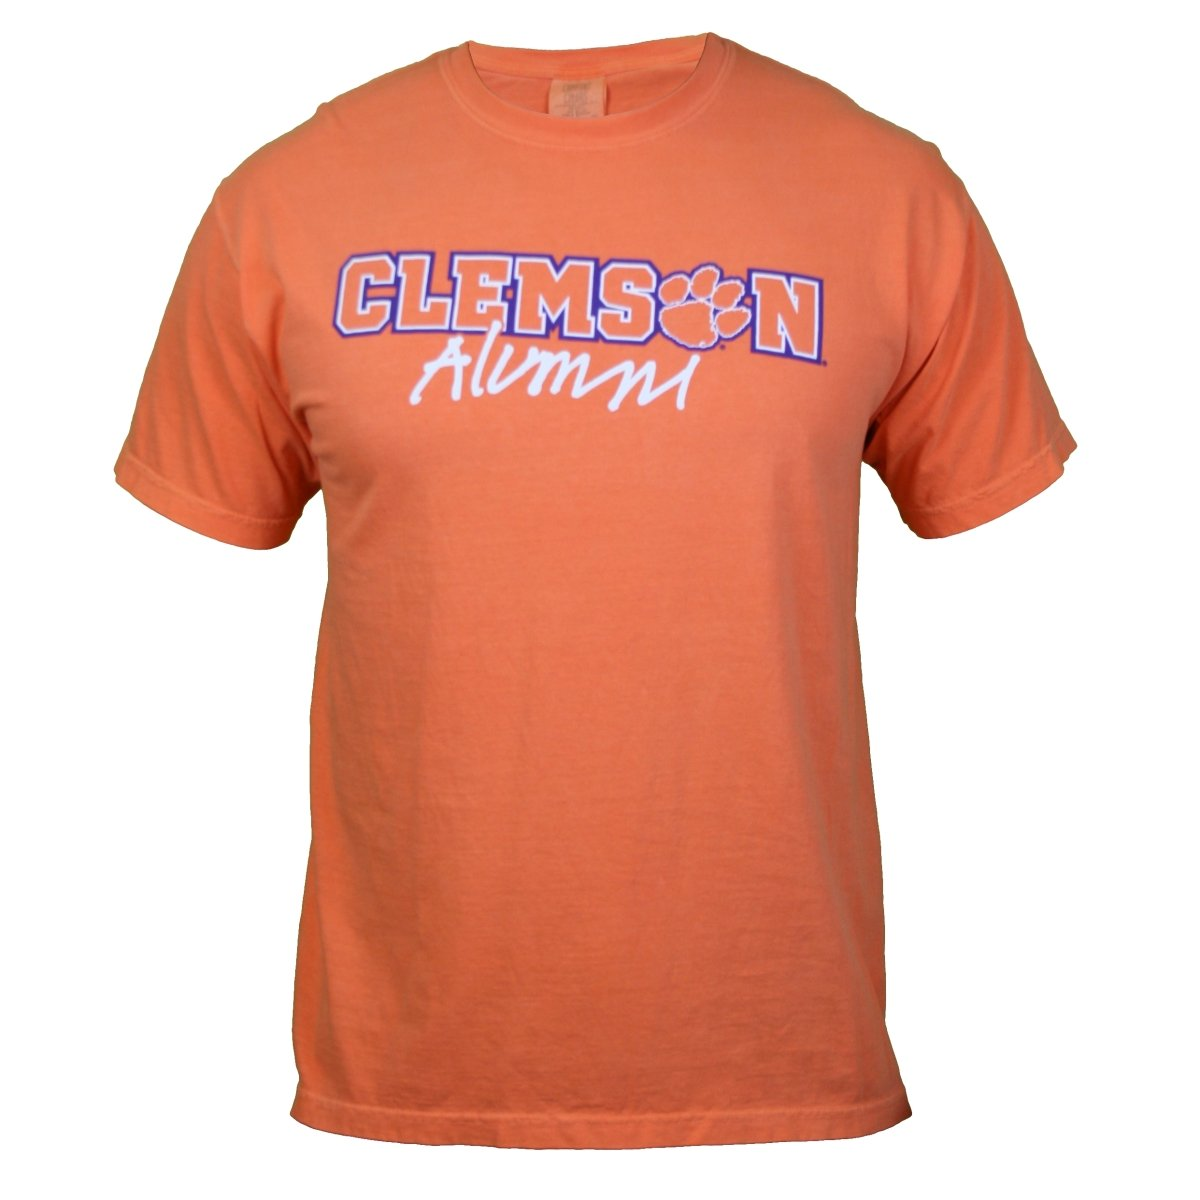 Comfort Color Alumni Tee - Mr. Knickerbocker